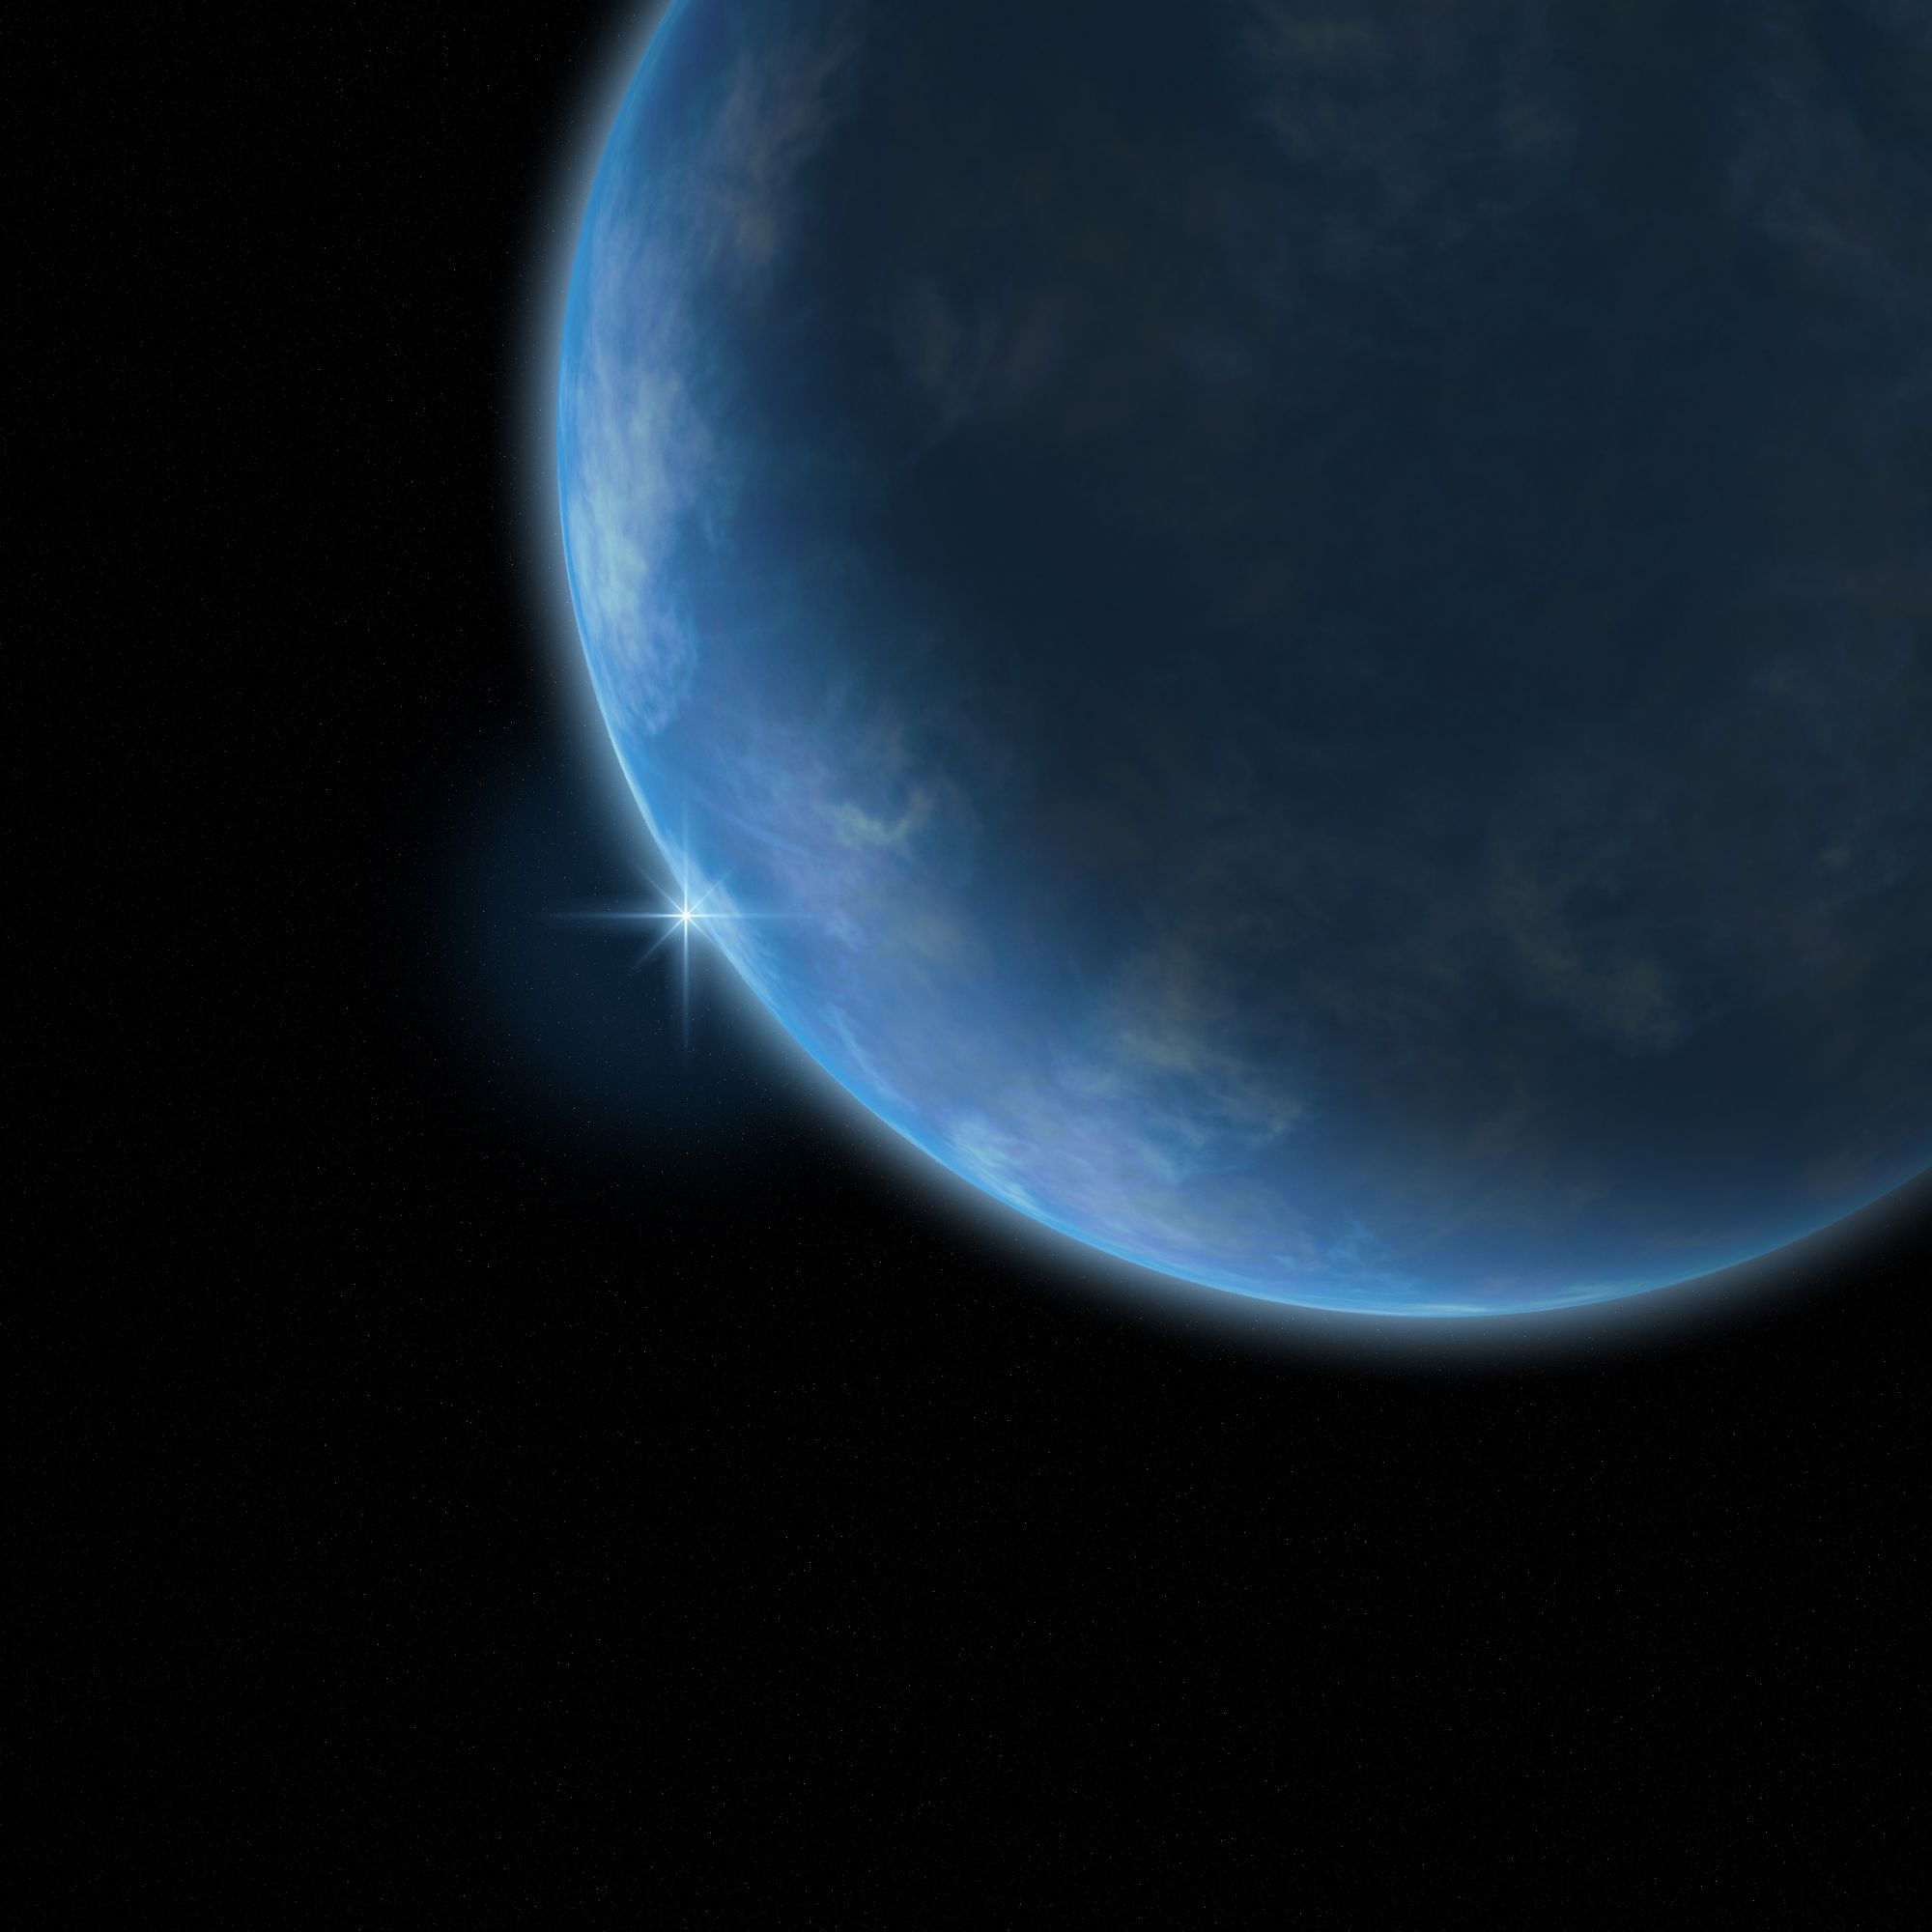 An artist's impression of an ocean planet. © www.clevelandwebs.com-samuel tucker